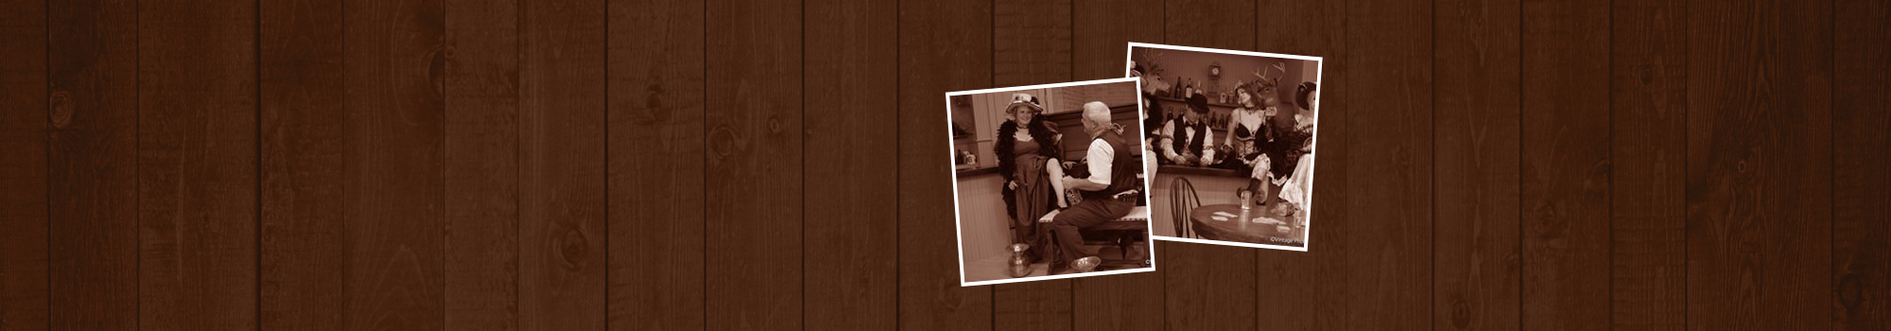 saloon western couple old time photo vintage photography emporium scene shoot, classic burlington vermont vt church street local fun things to do interesting